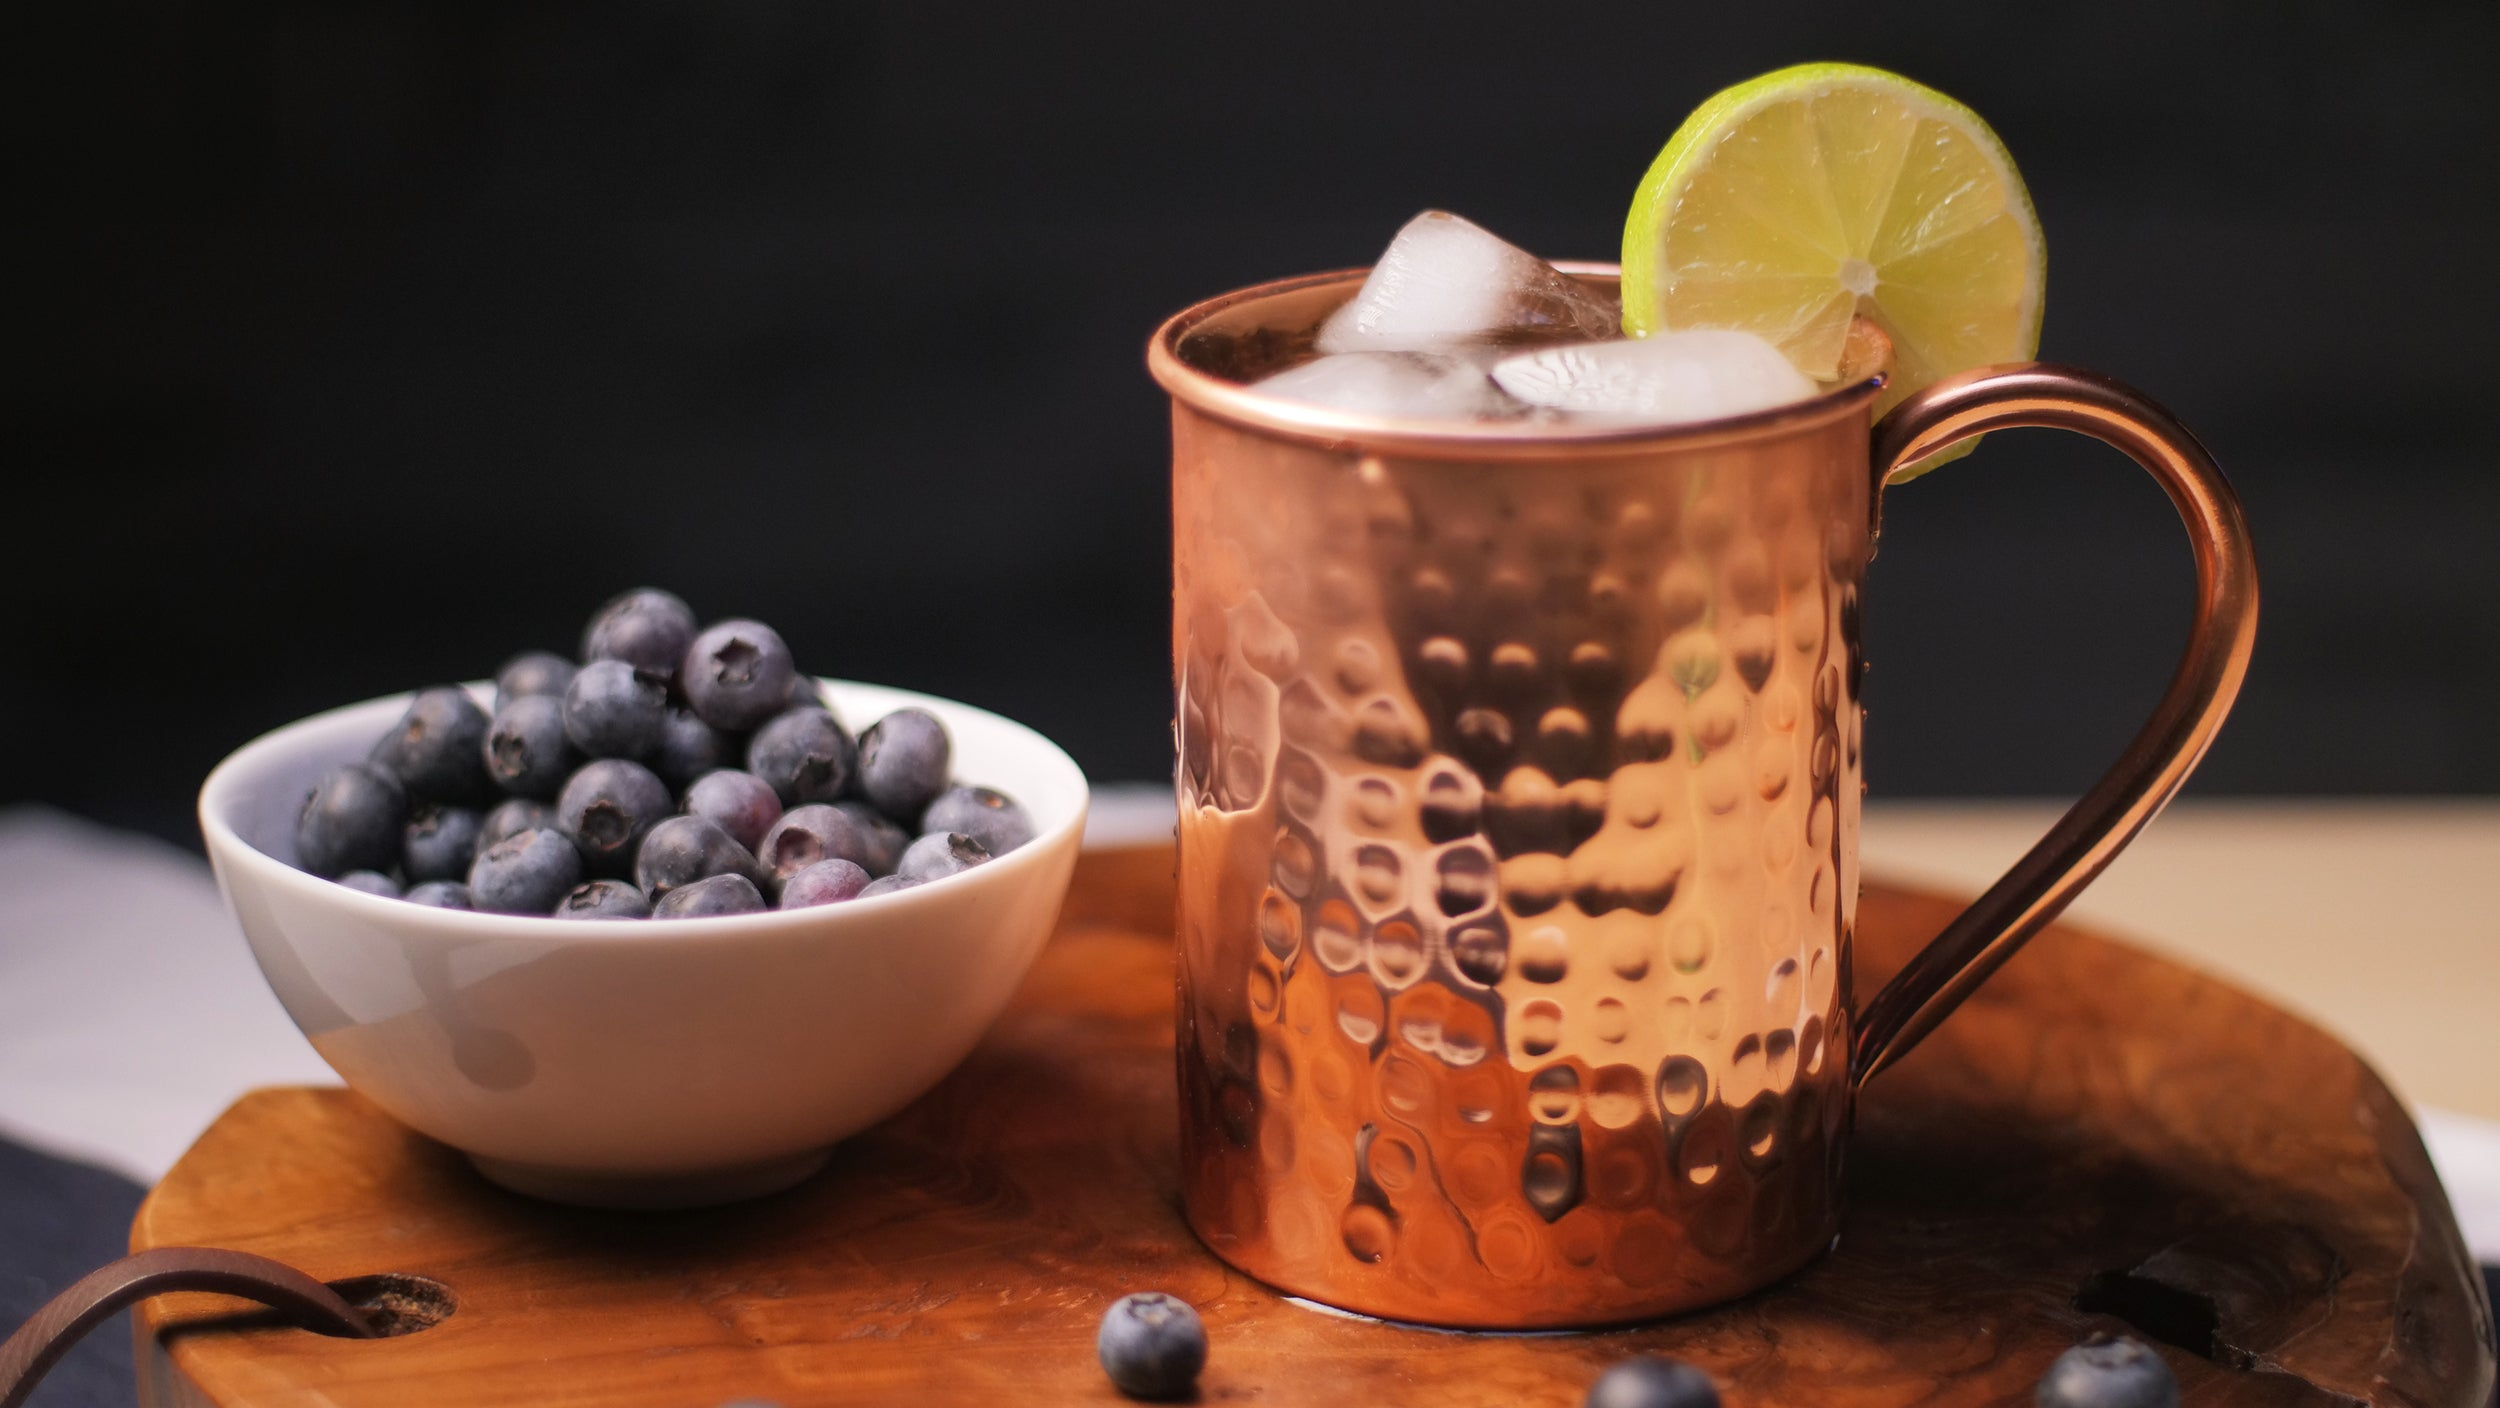 Moscow Blue (Blueberry Mule Variation)